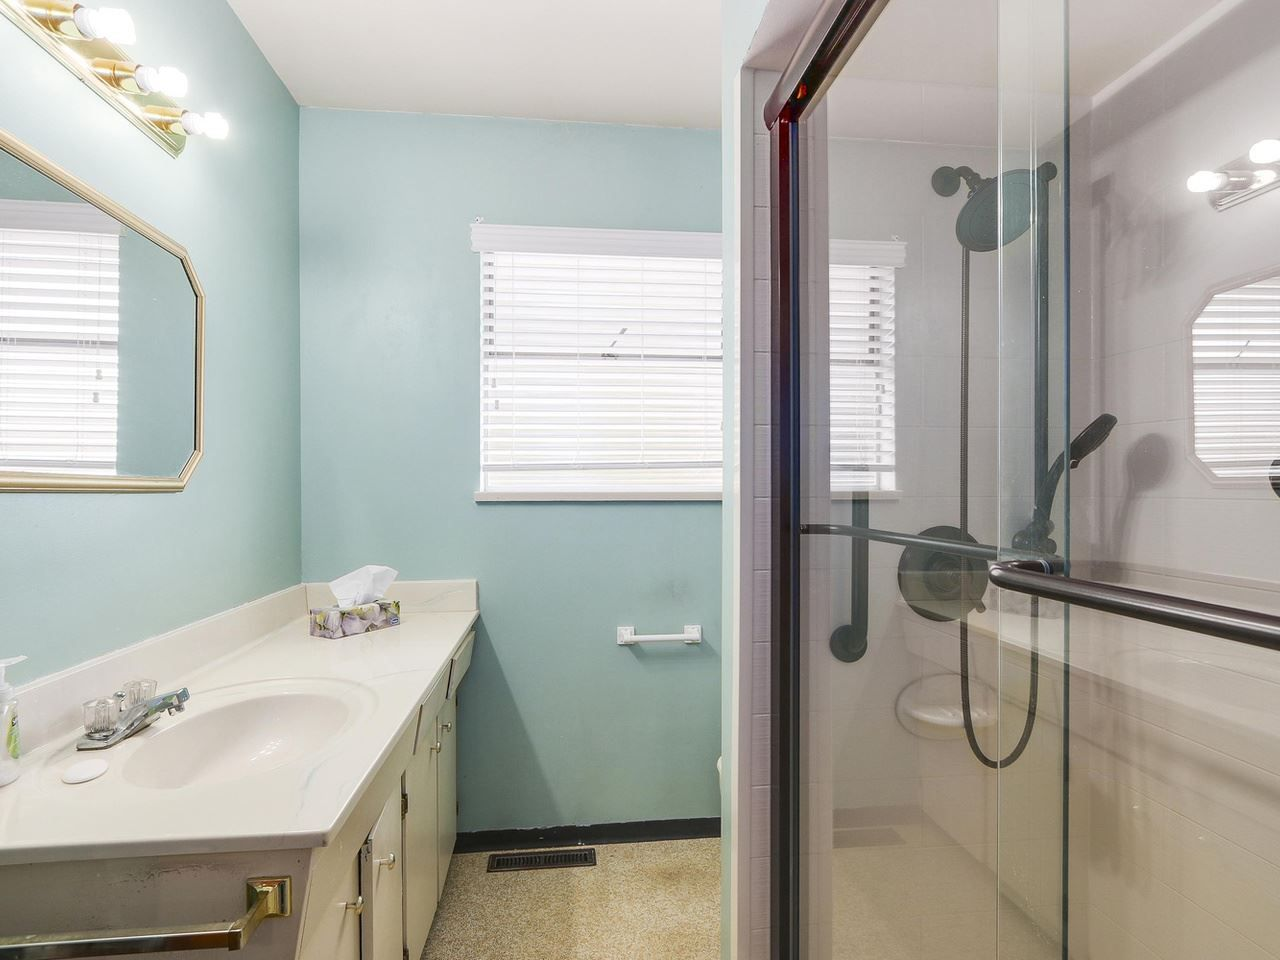 Photo 12: Photos: 731 LINTON Street in Coquitlam: Central Coquitlam House for sale : MLS®# R2157896